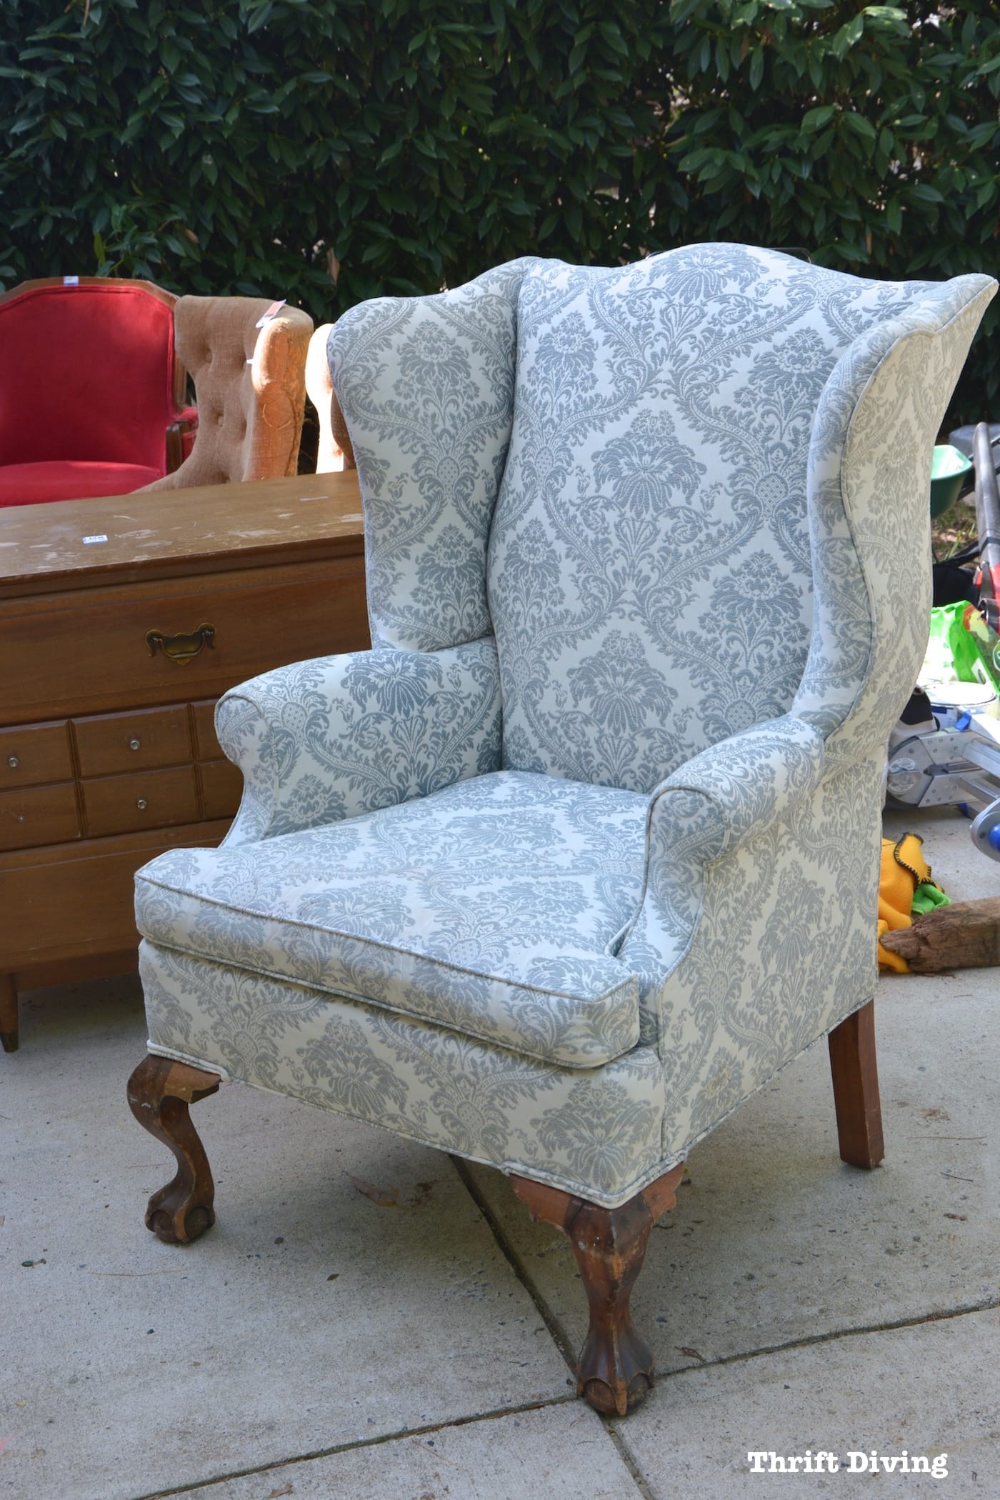 How To Reupholster A Wingback Chair: Step-by-Step Video